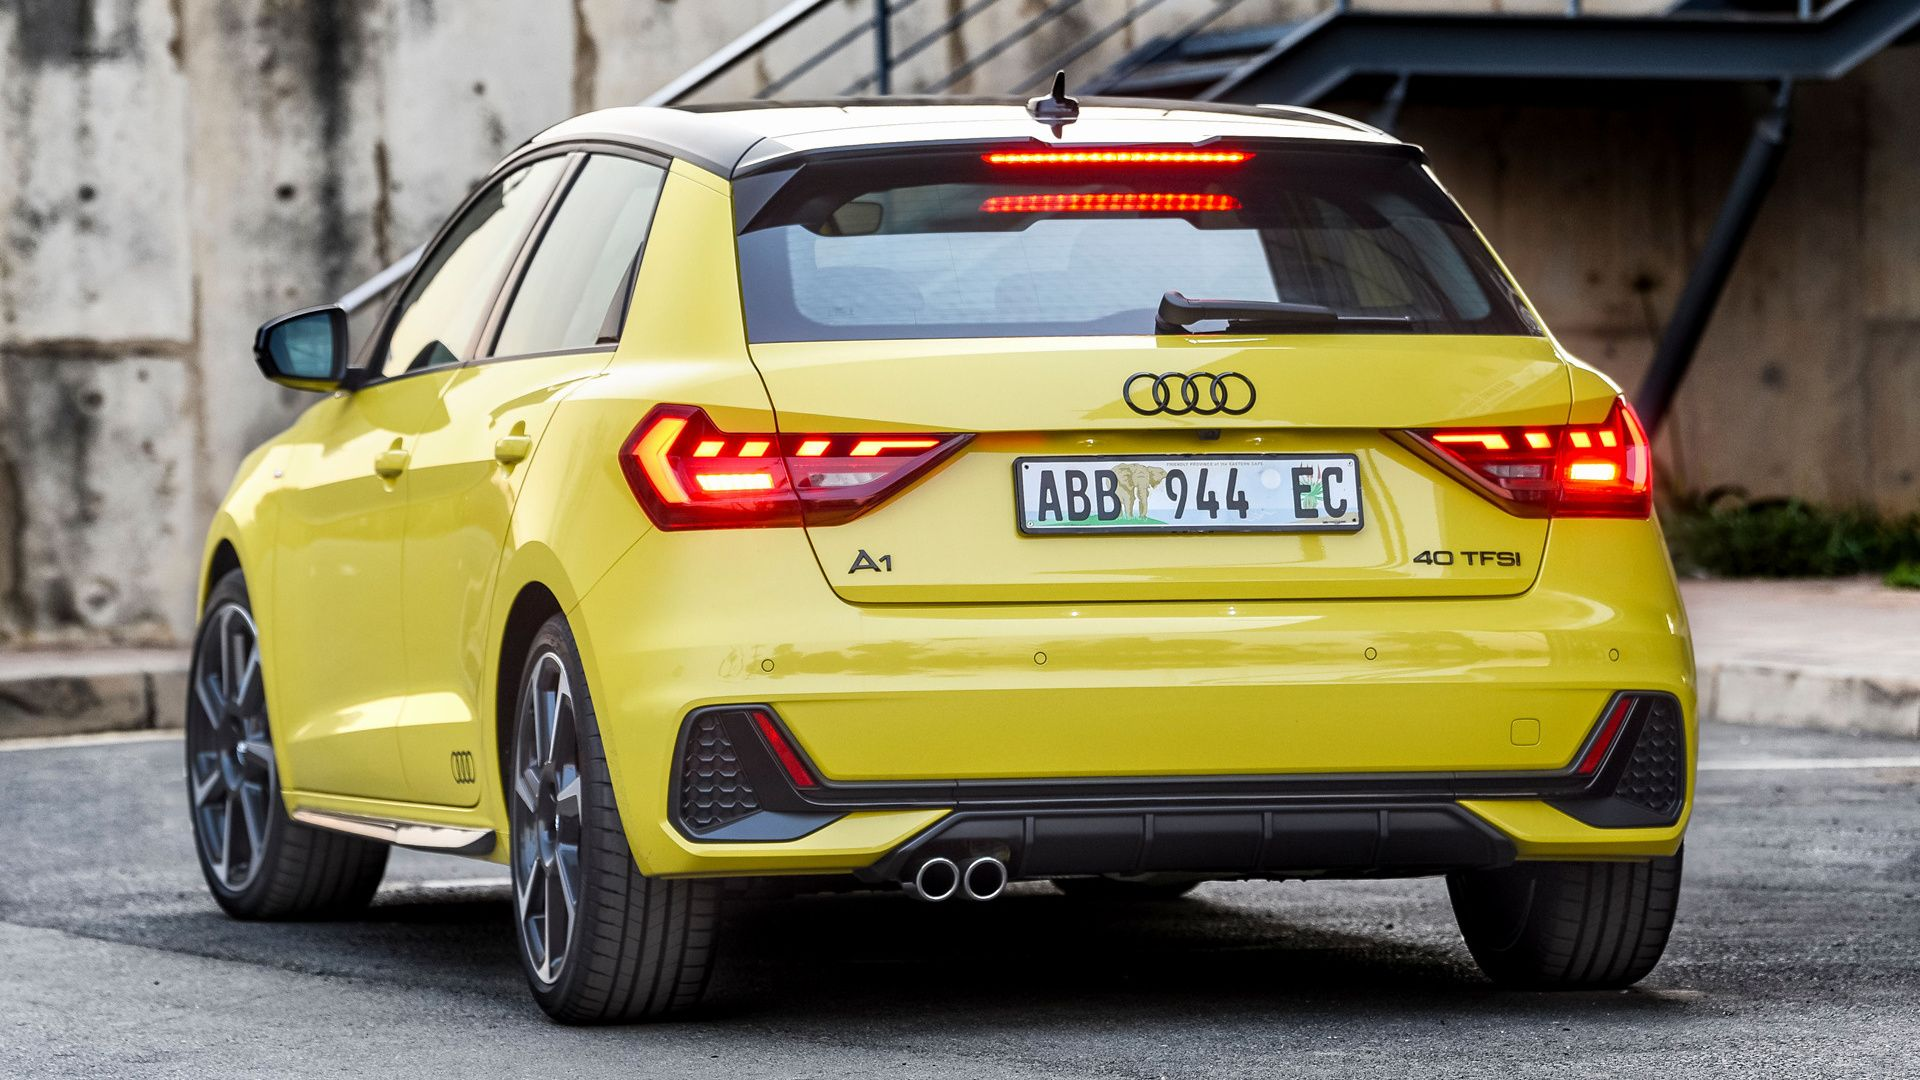 Vehicles Audi A1 Sportback Edition One Audi Luxury Car Yellow Car Car Hd Wallpaper Background Imagess Wallpaper Cart In 2020 Audi A1 Audi A1 Sportback Car Hd